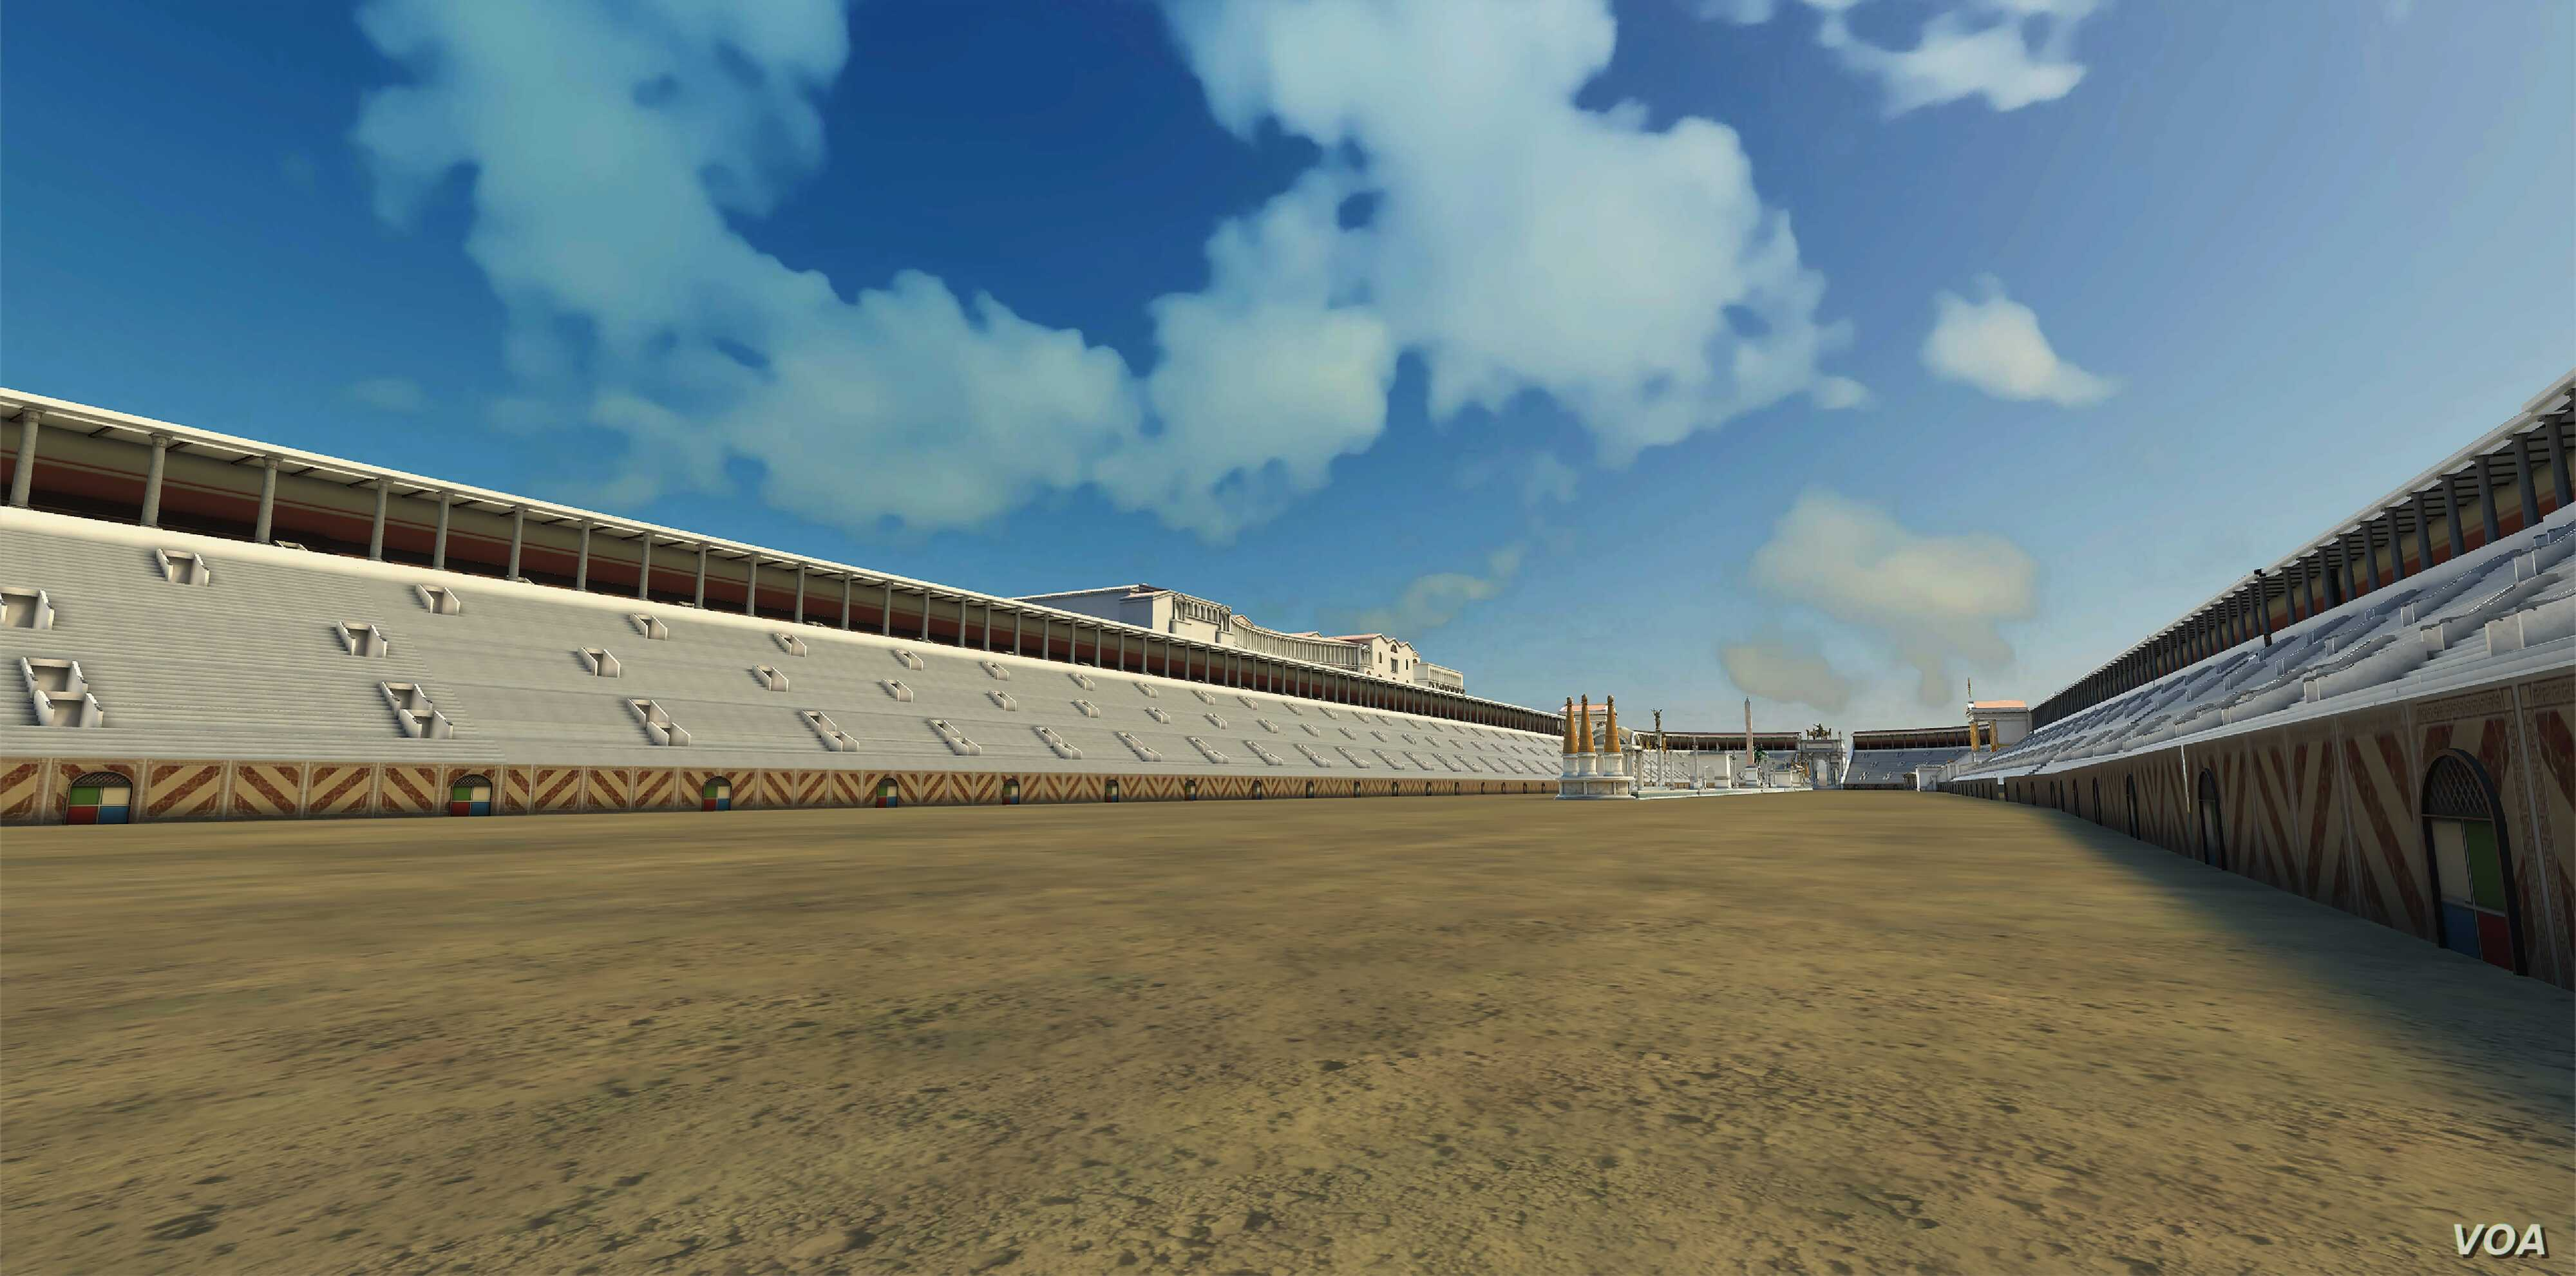 Another view of Rome's Circus Maximus reconstructed, with its tiered seating arena.